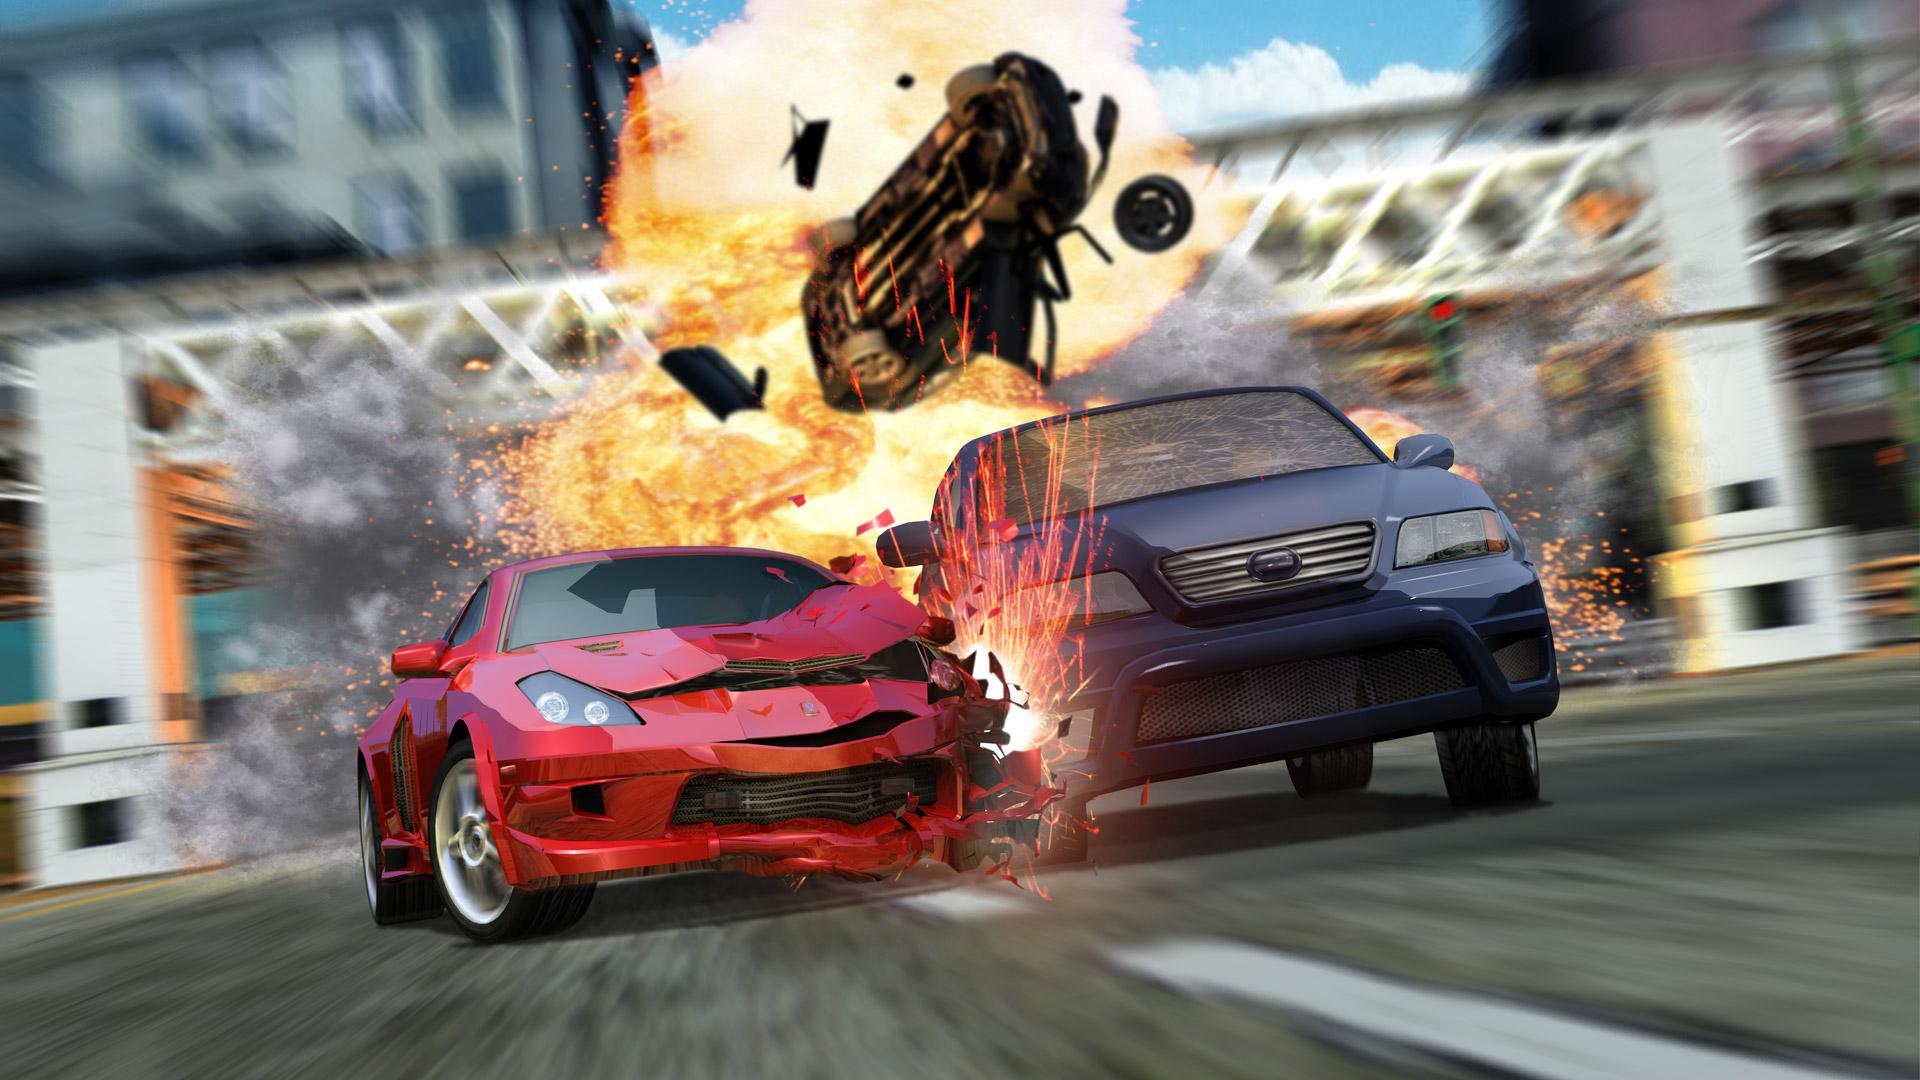 The series went on to inspire some huge gameplay changes in the Need for Speed franchise